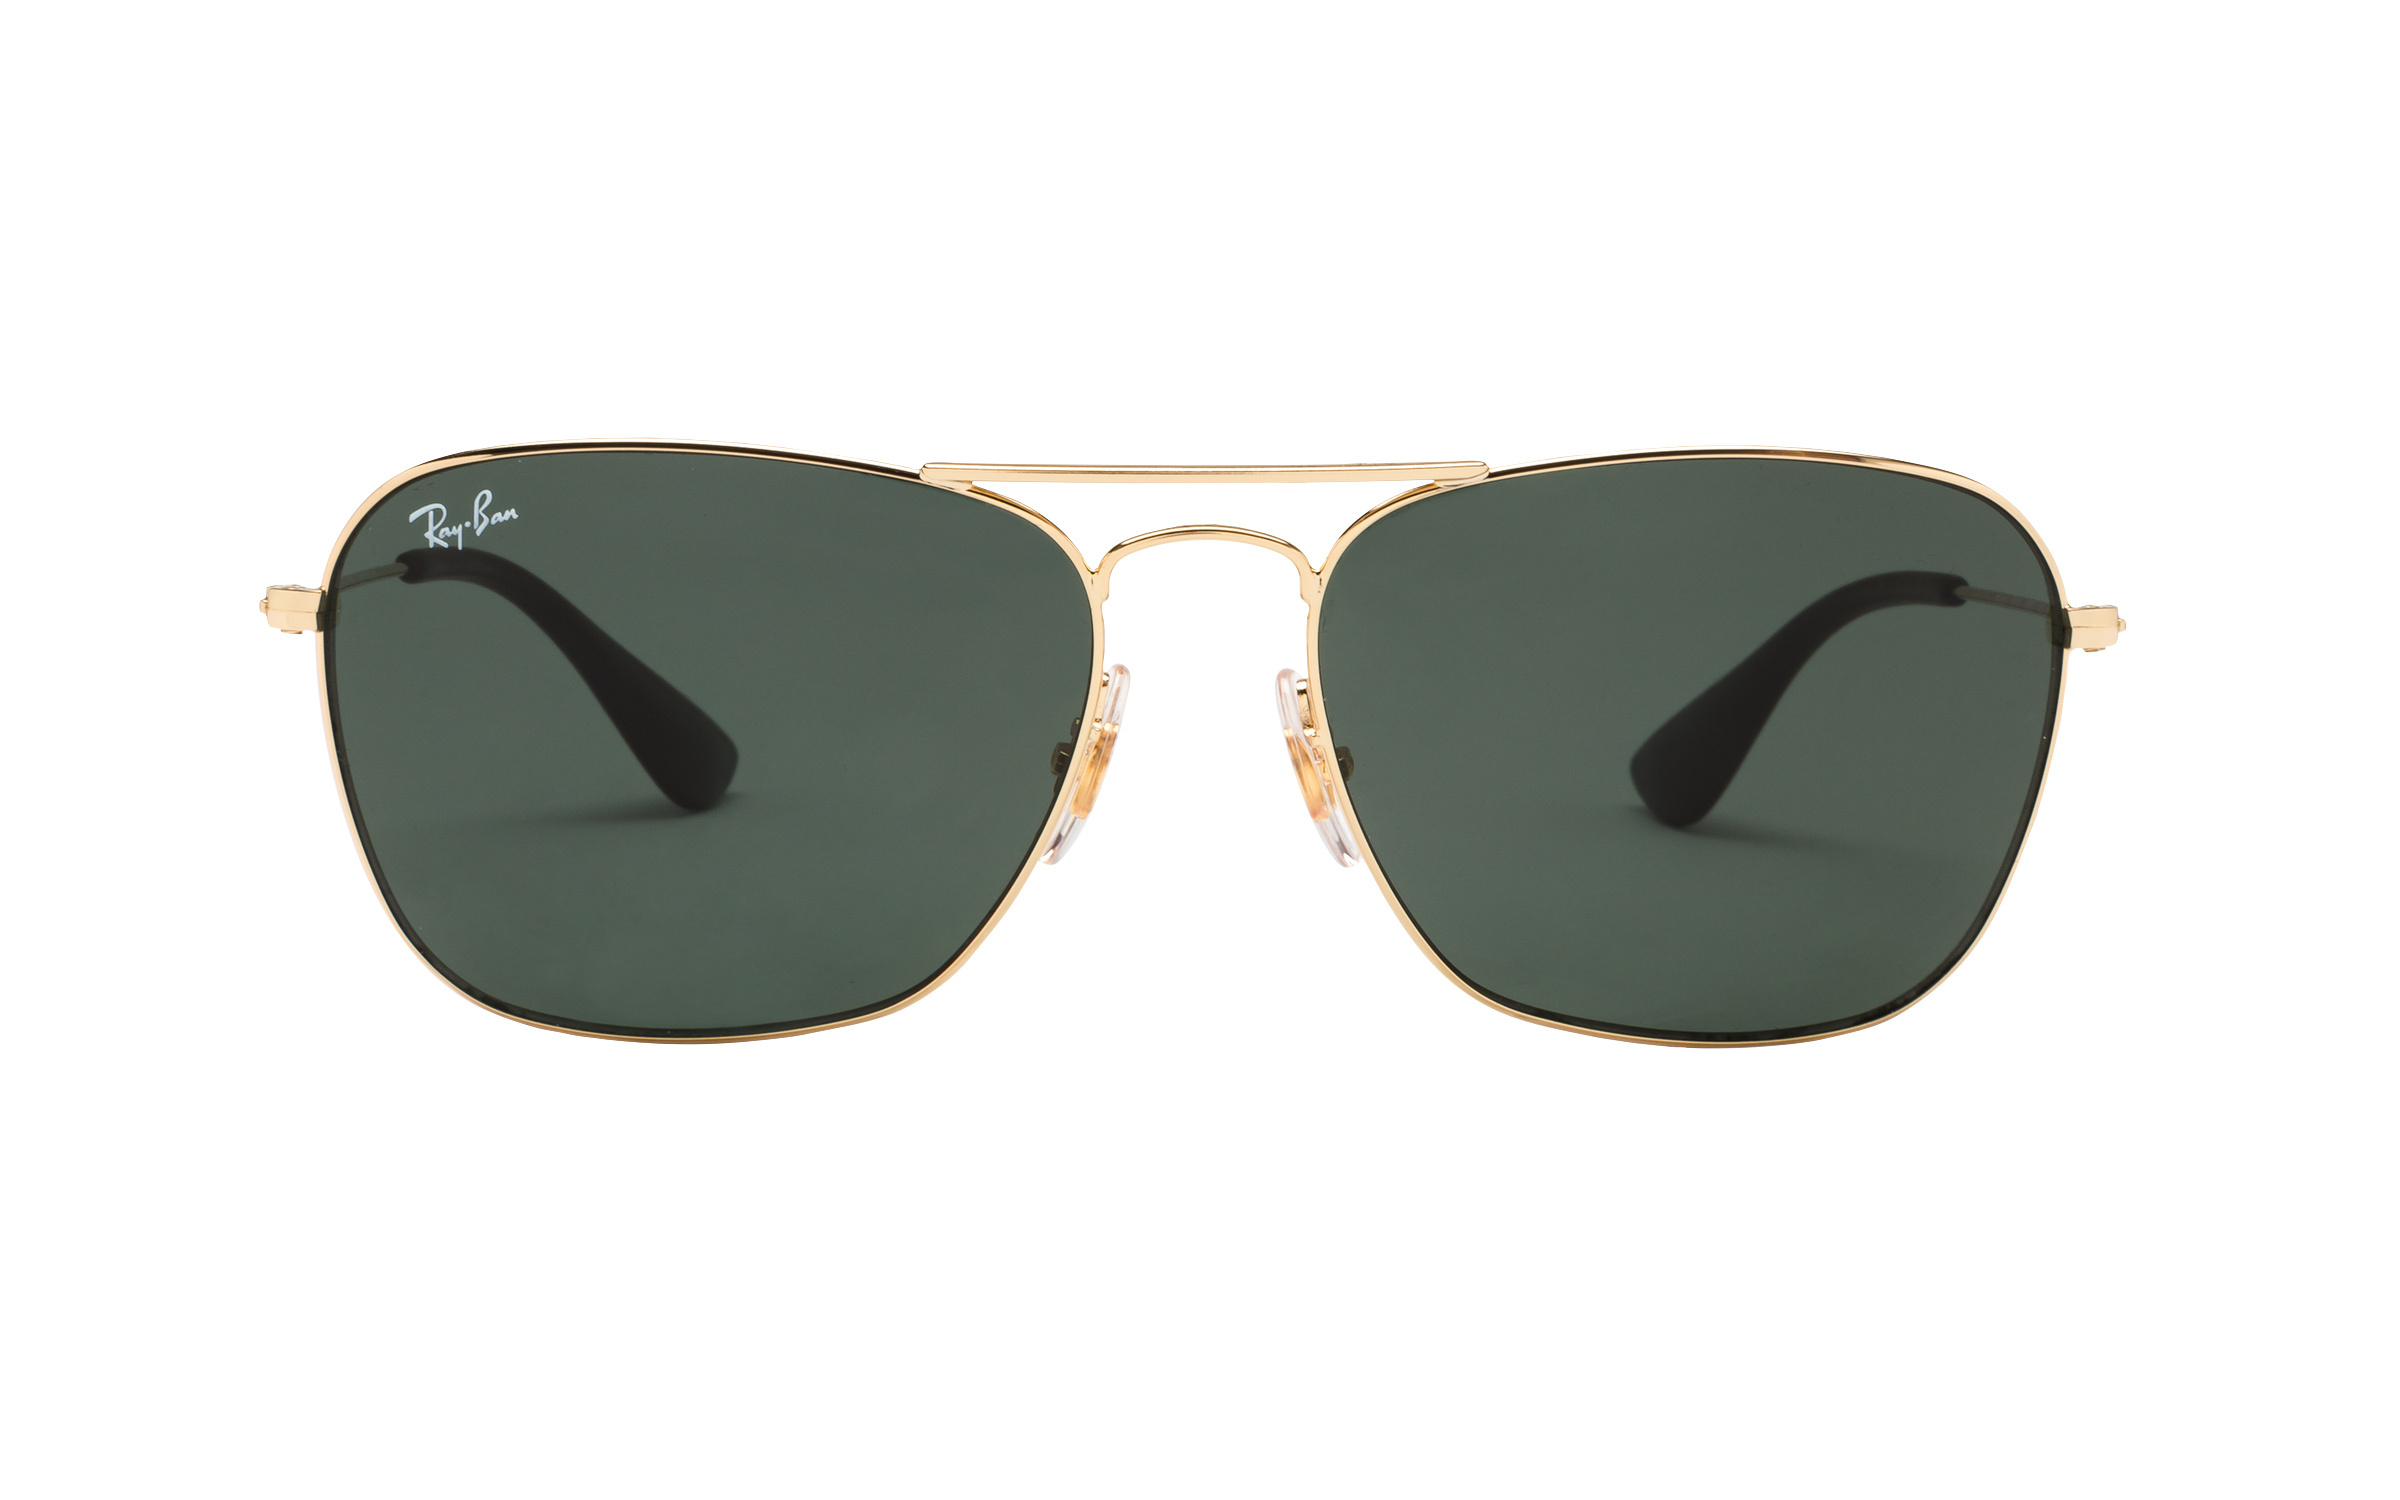 RayBan Ray-Ban RB3610 001/71 58 Sunglasses in Gold | Plastic/Metal - Online Coastal